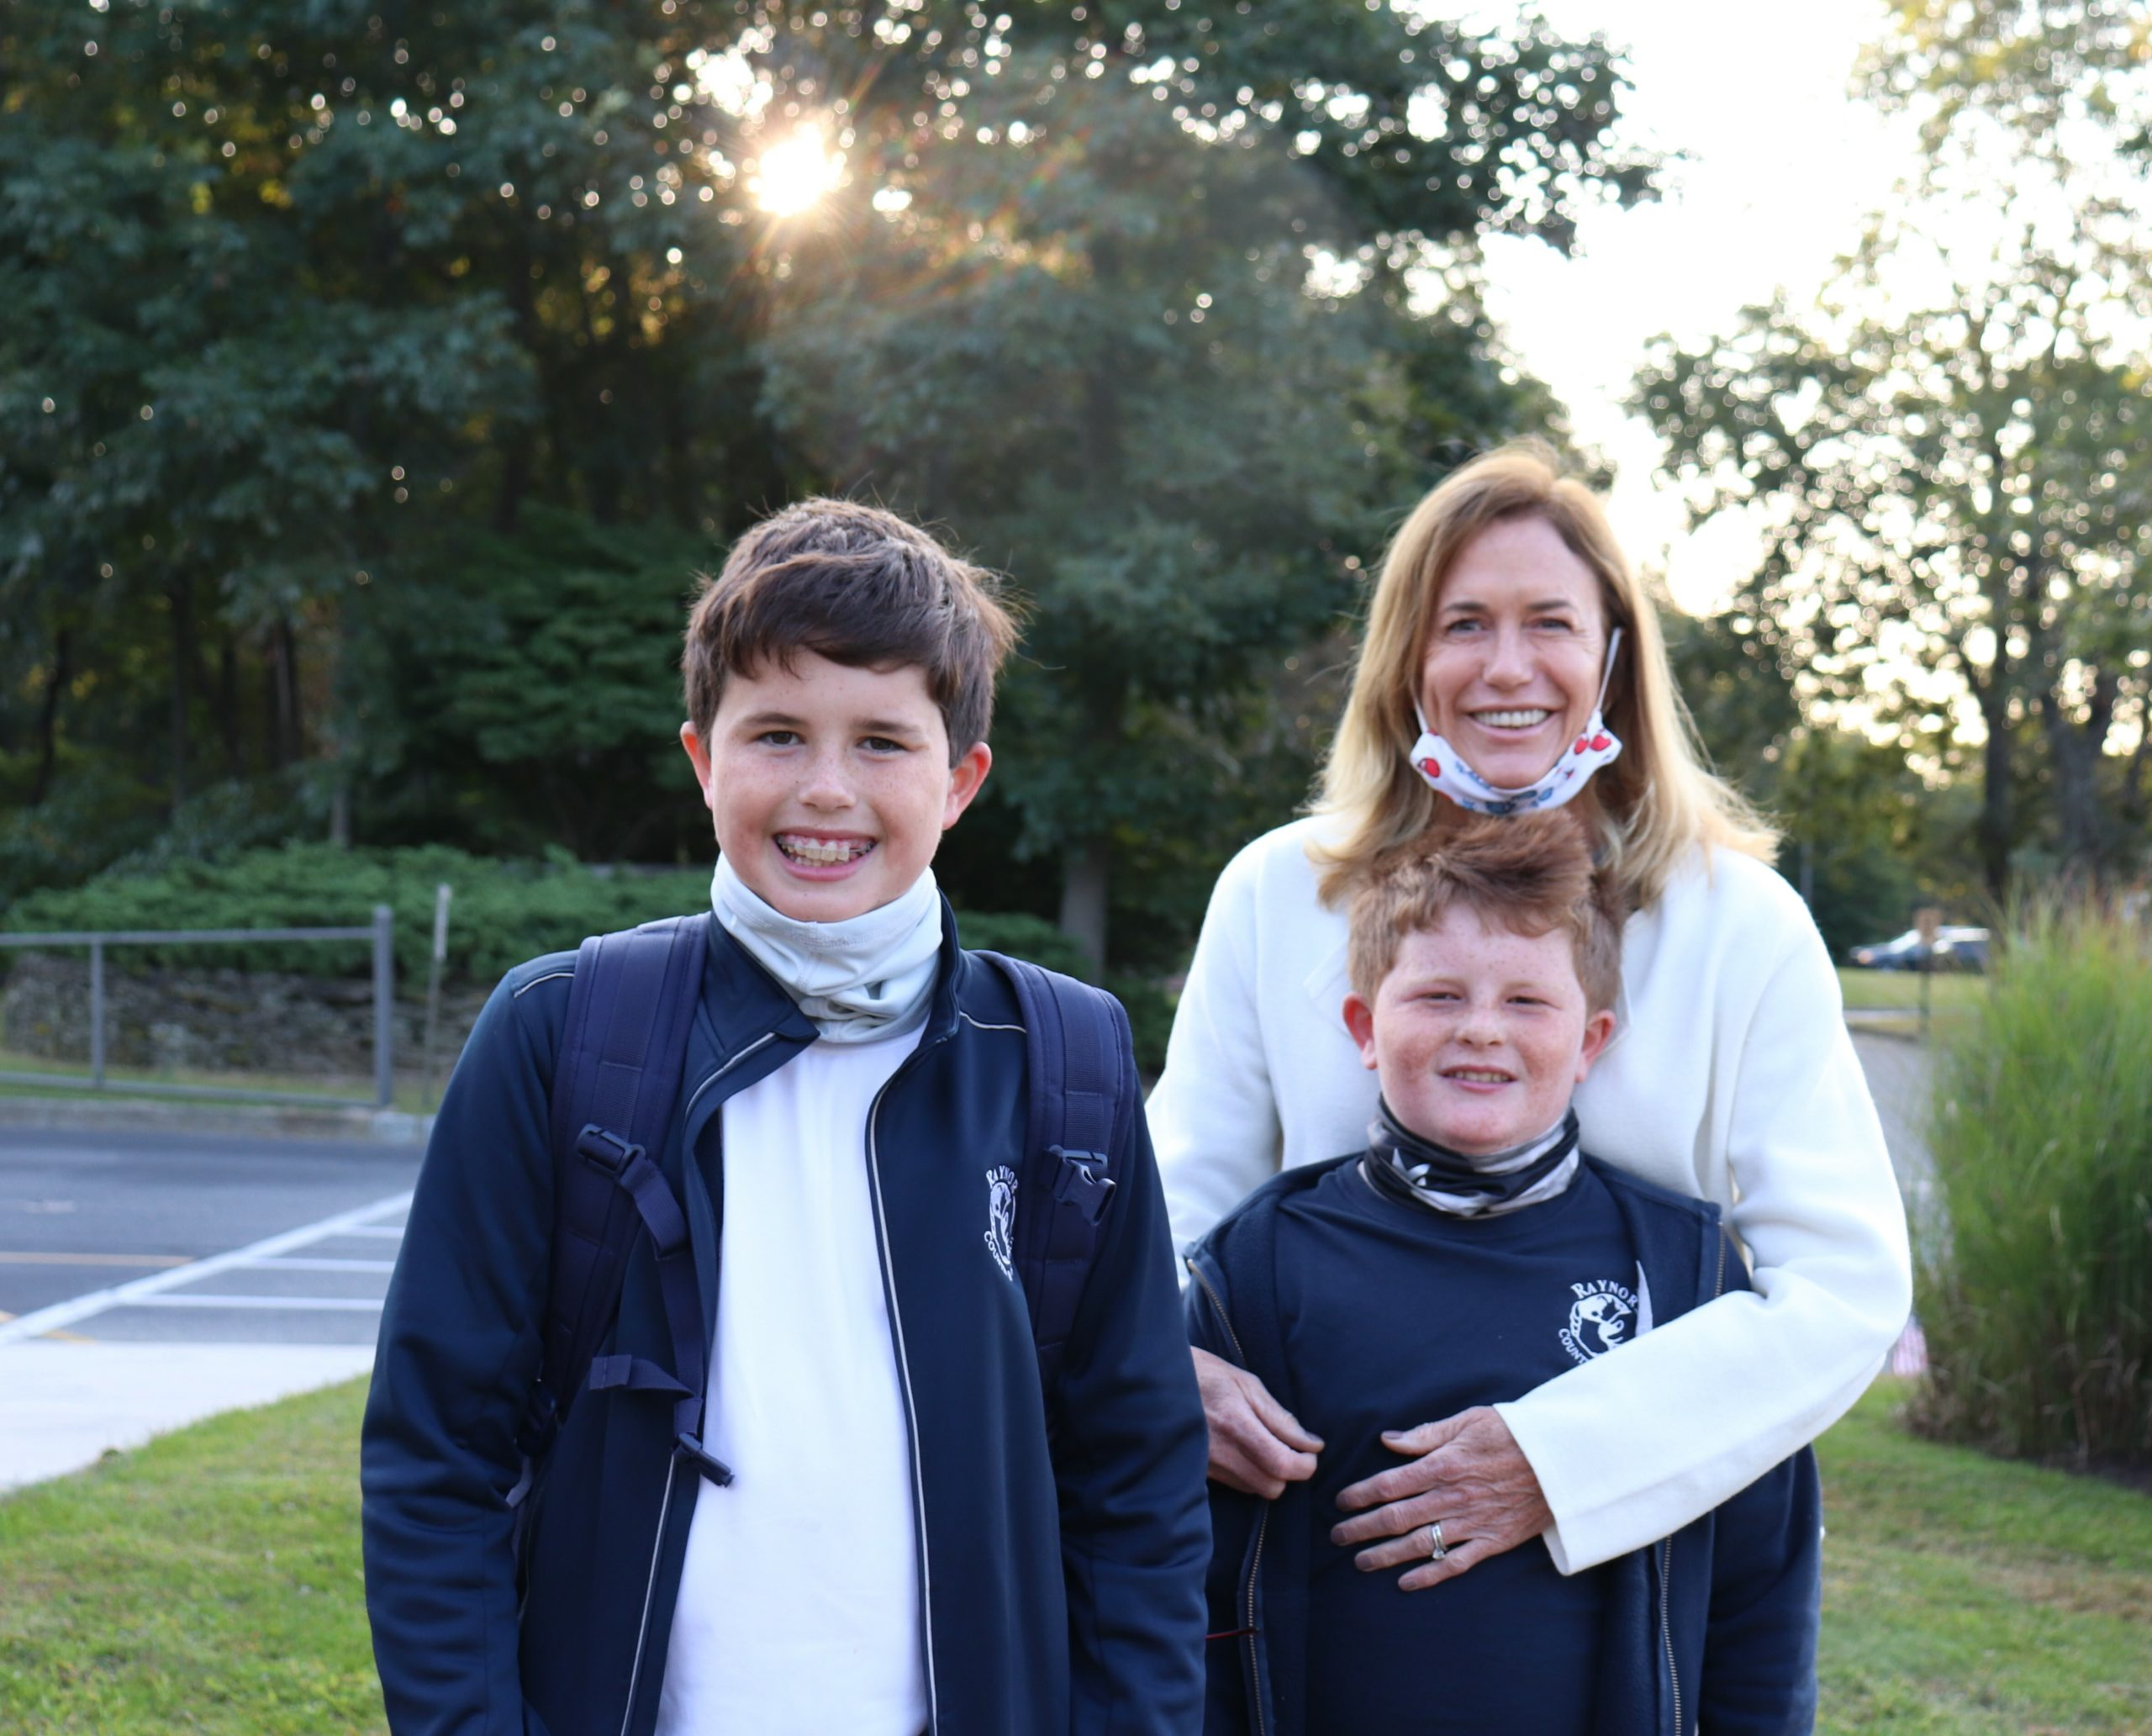 Raynor Country Day School parent, Michelle Kelly poses with her boys, fellow RCDS students, Sean and Kevin Kelly, before the school's